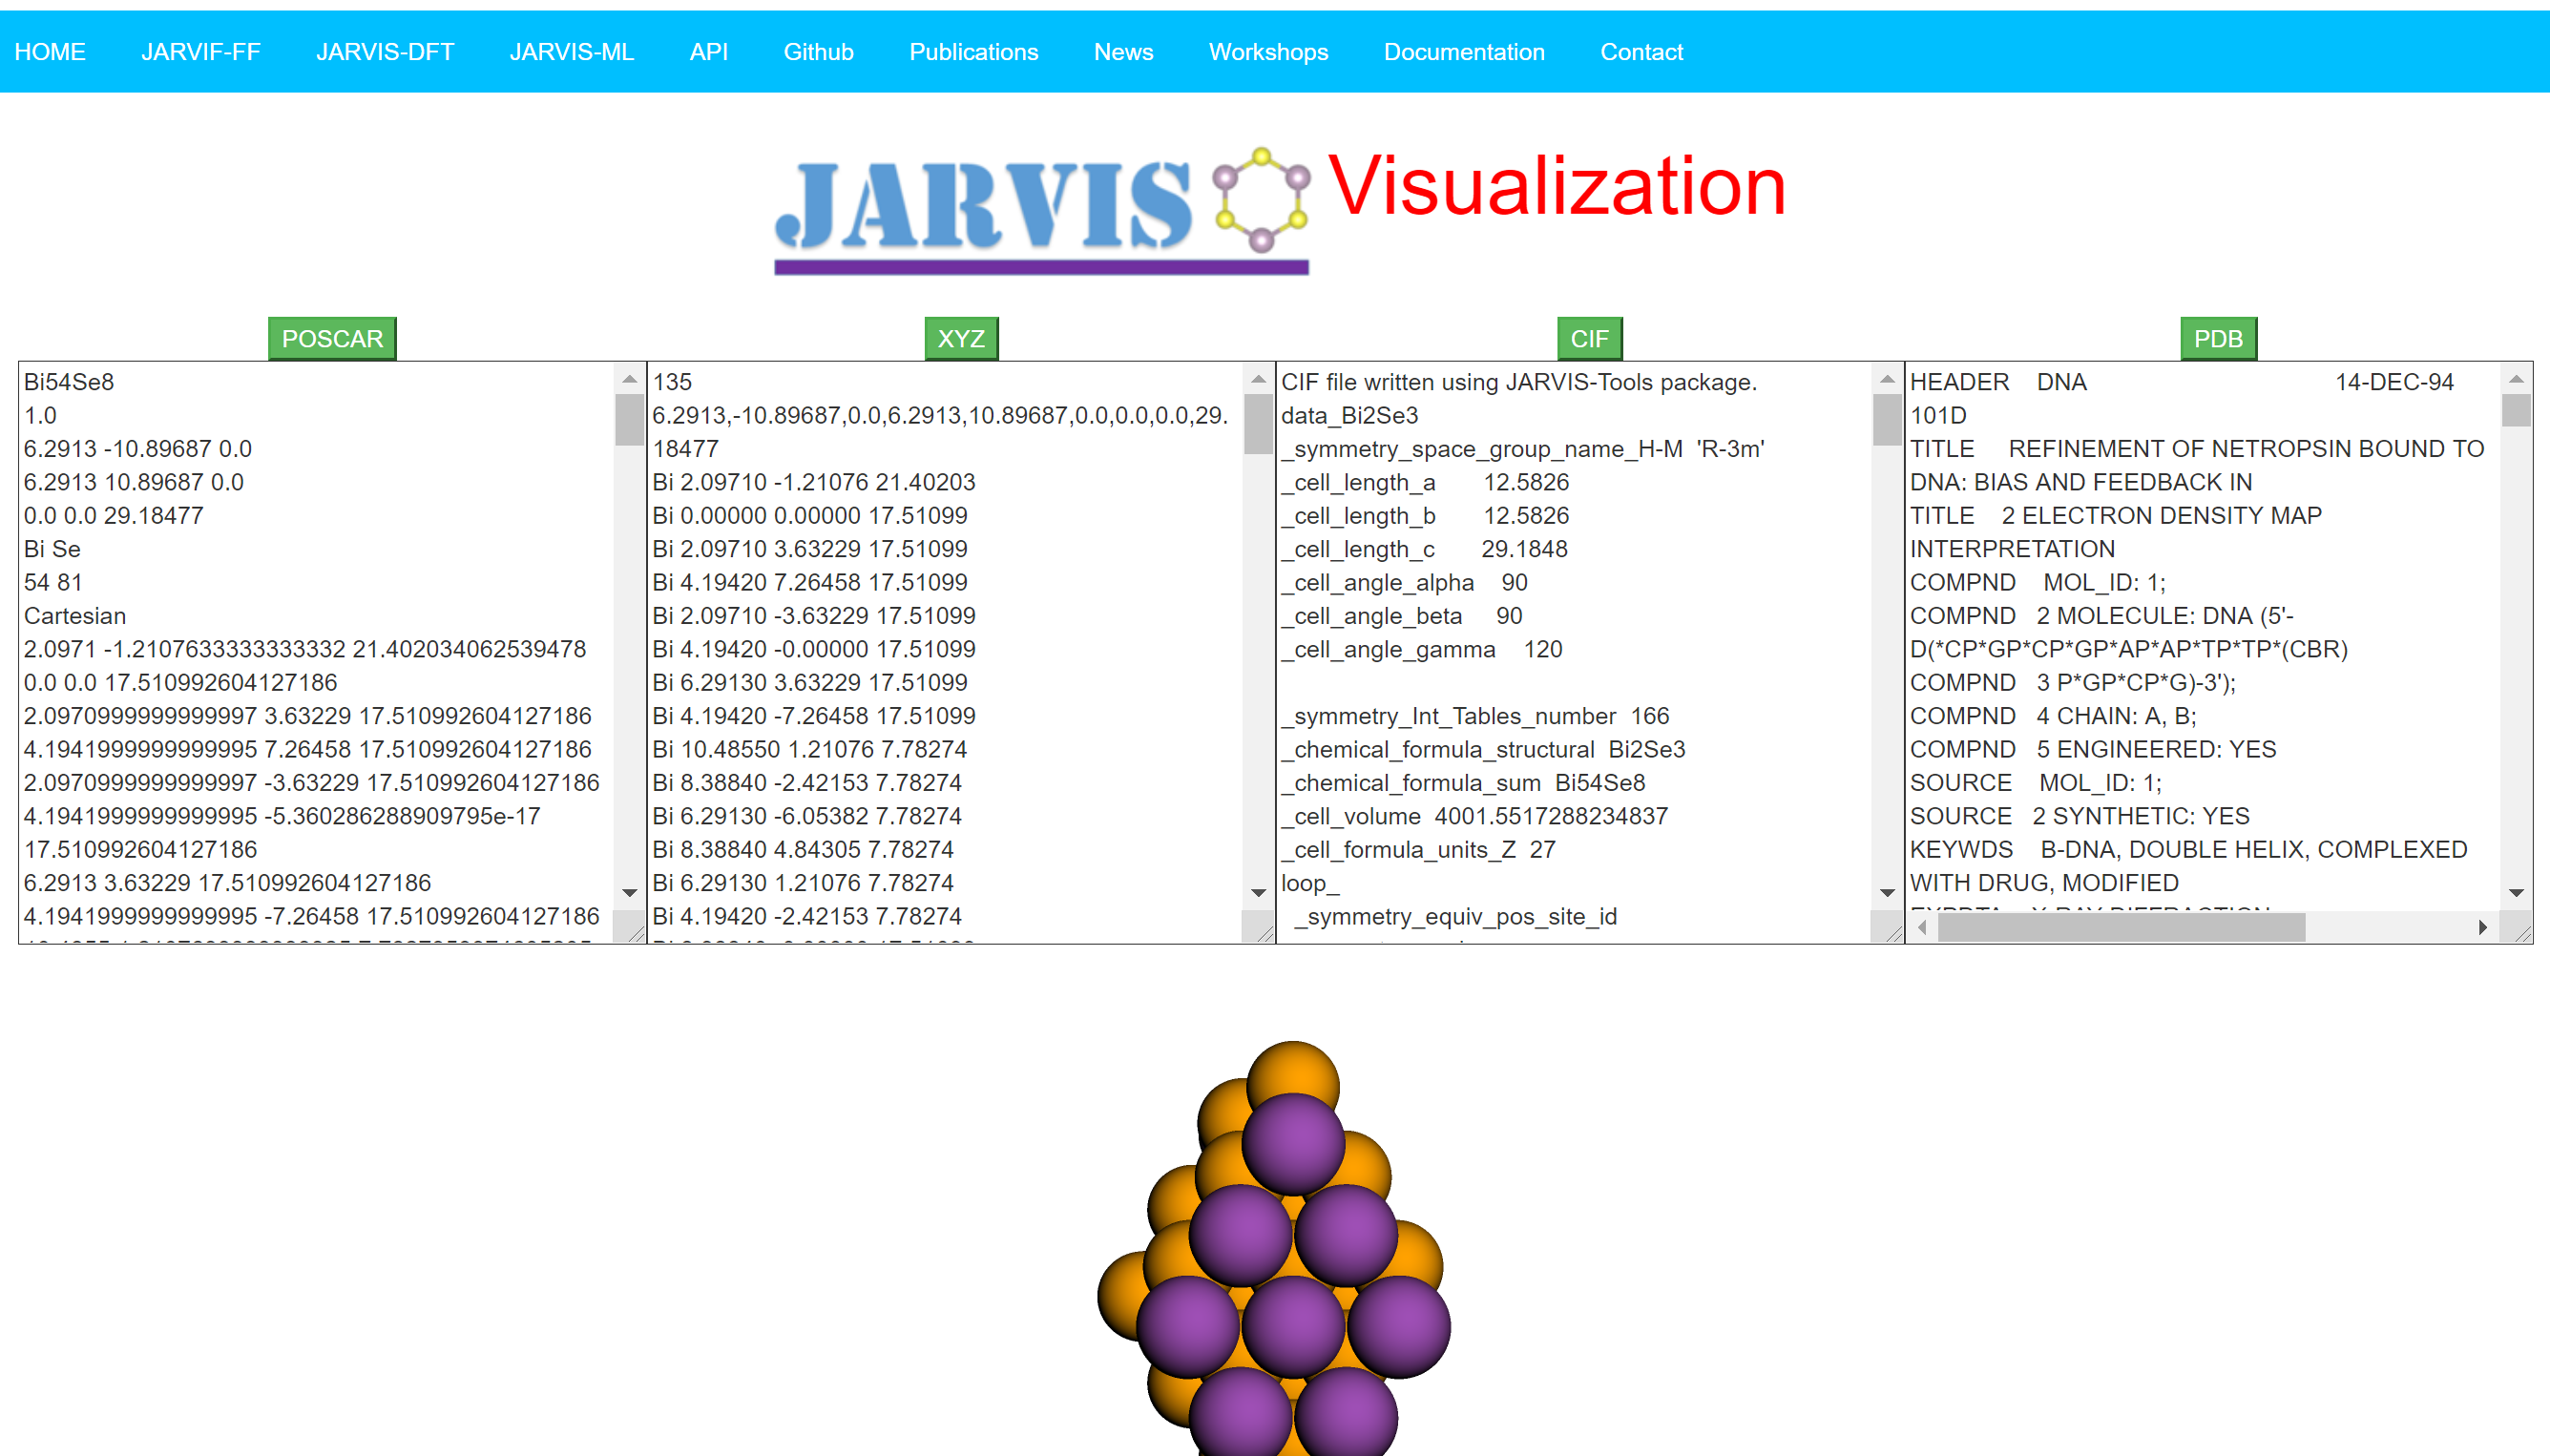 JARVIS-Visualization